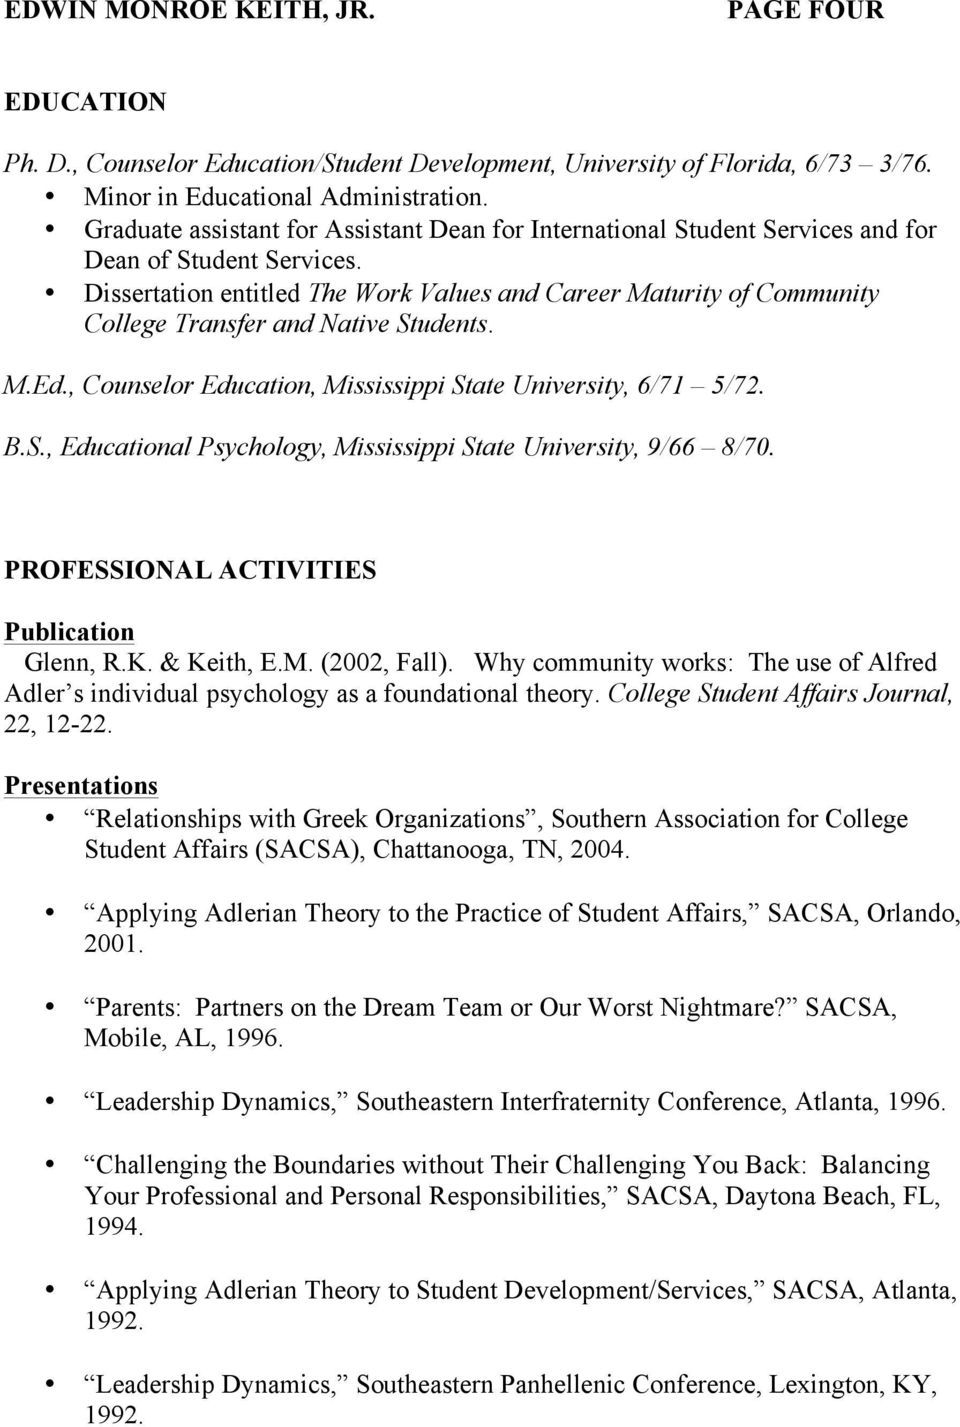 Dissertation entitled The Work Values and Career Maturity of Community College Transfer and Native Students. M.Ed., Counselor Education, Mississippi State University, 6/71 5/72. B.S., Educational Psychology, Mississippi State University, 9/66 8/70.